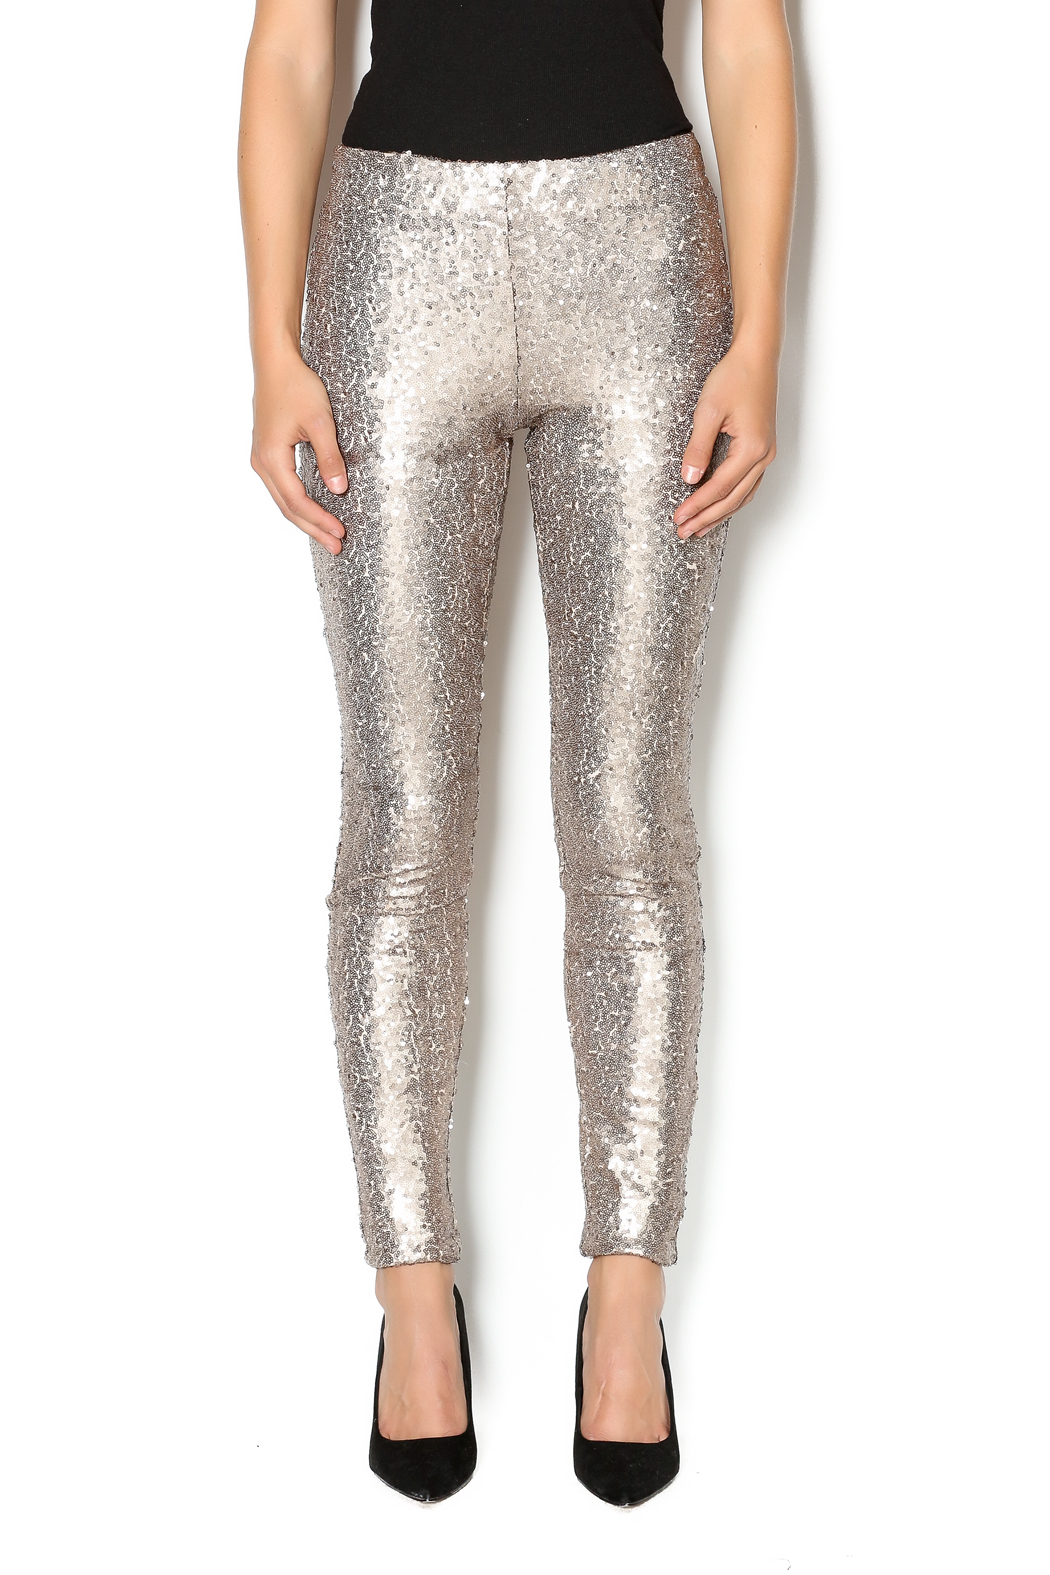 may and july inc Sequin Legging - Front Cropped Image